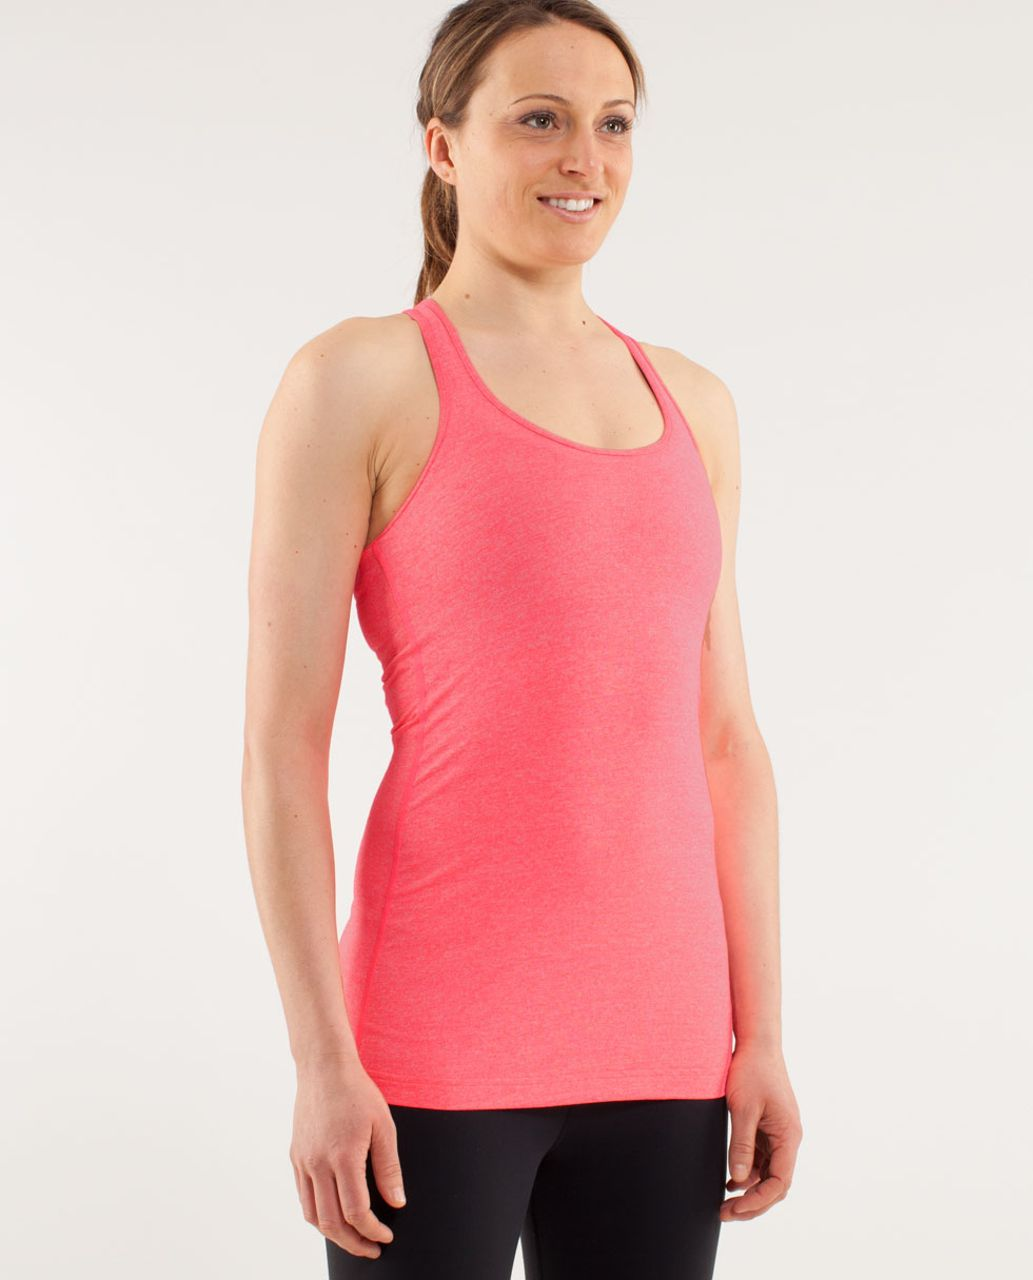 Lululemon Cool Racerback - Heathered Flash